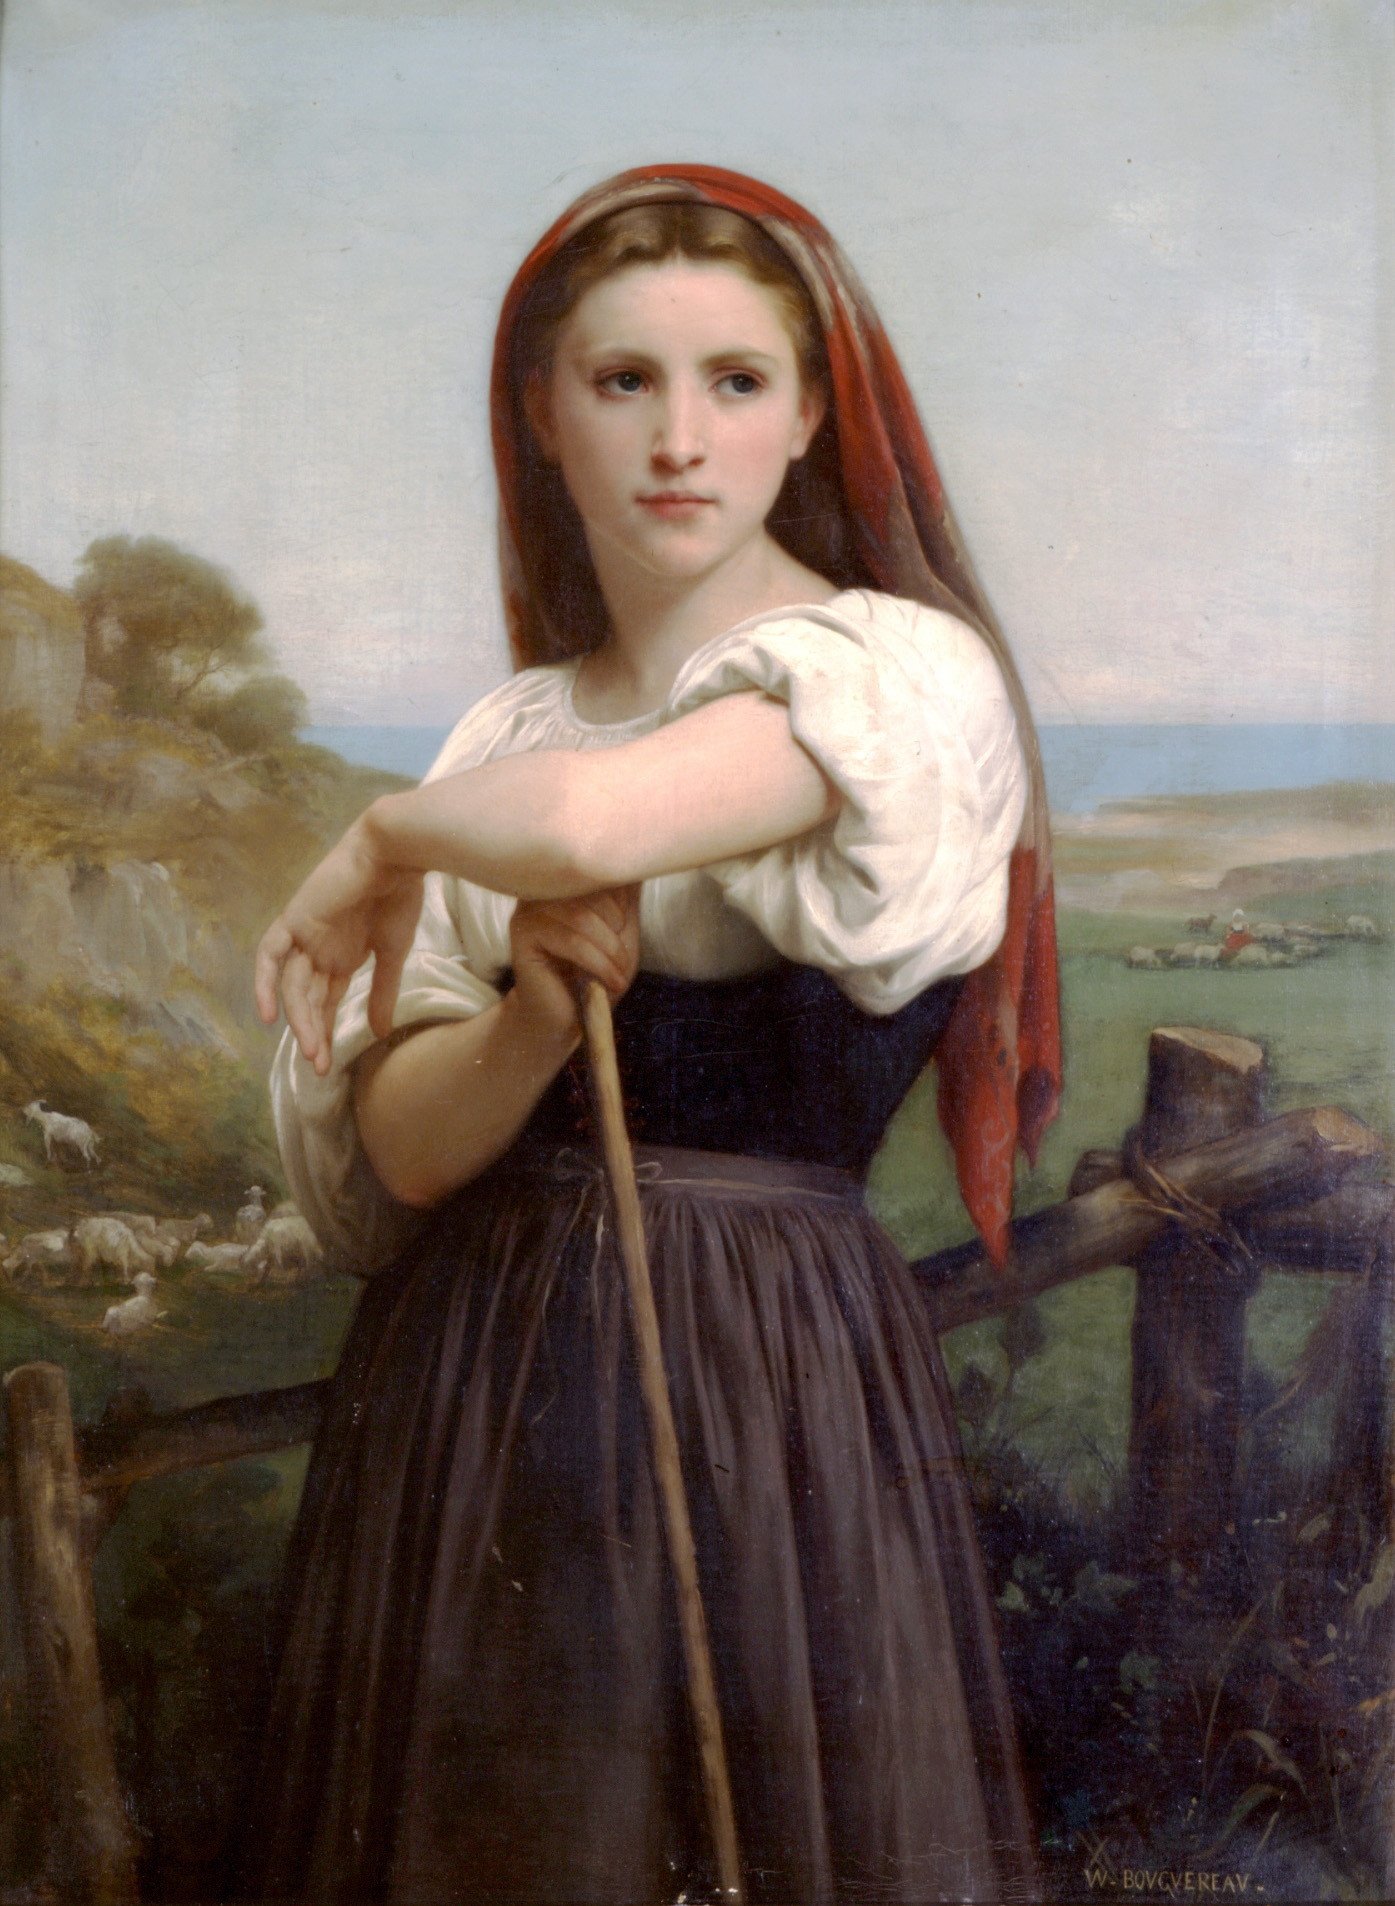 http://uploads1.wikipaintings.org/images/william-adolphe-bouguereau/young-shepherdess-1868.jpg